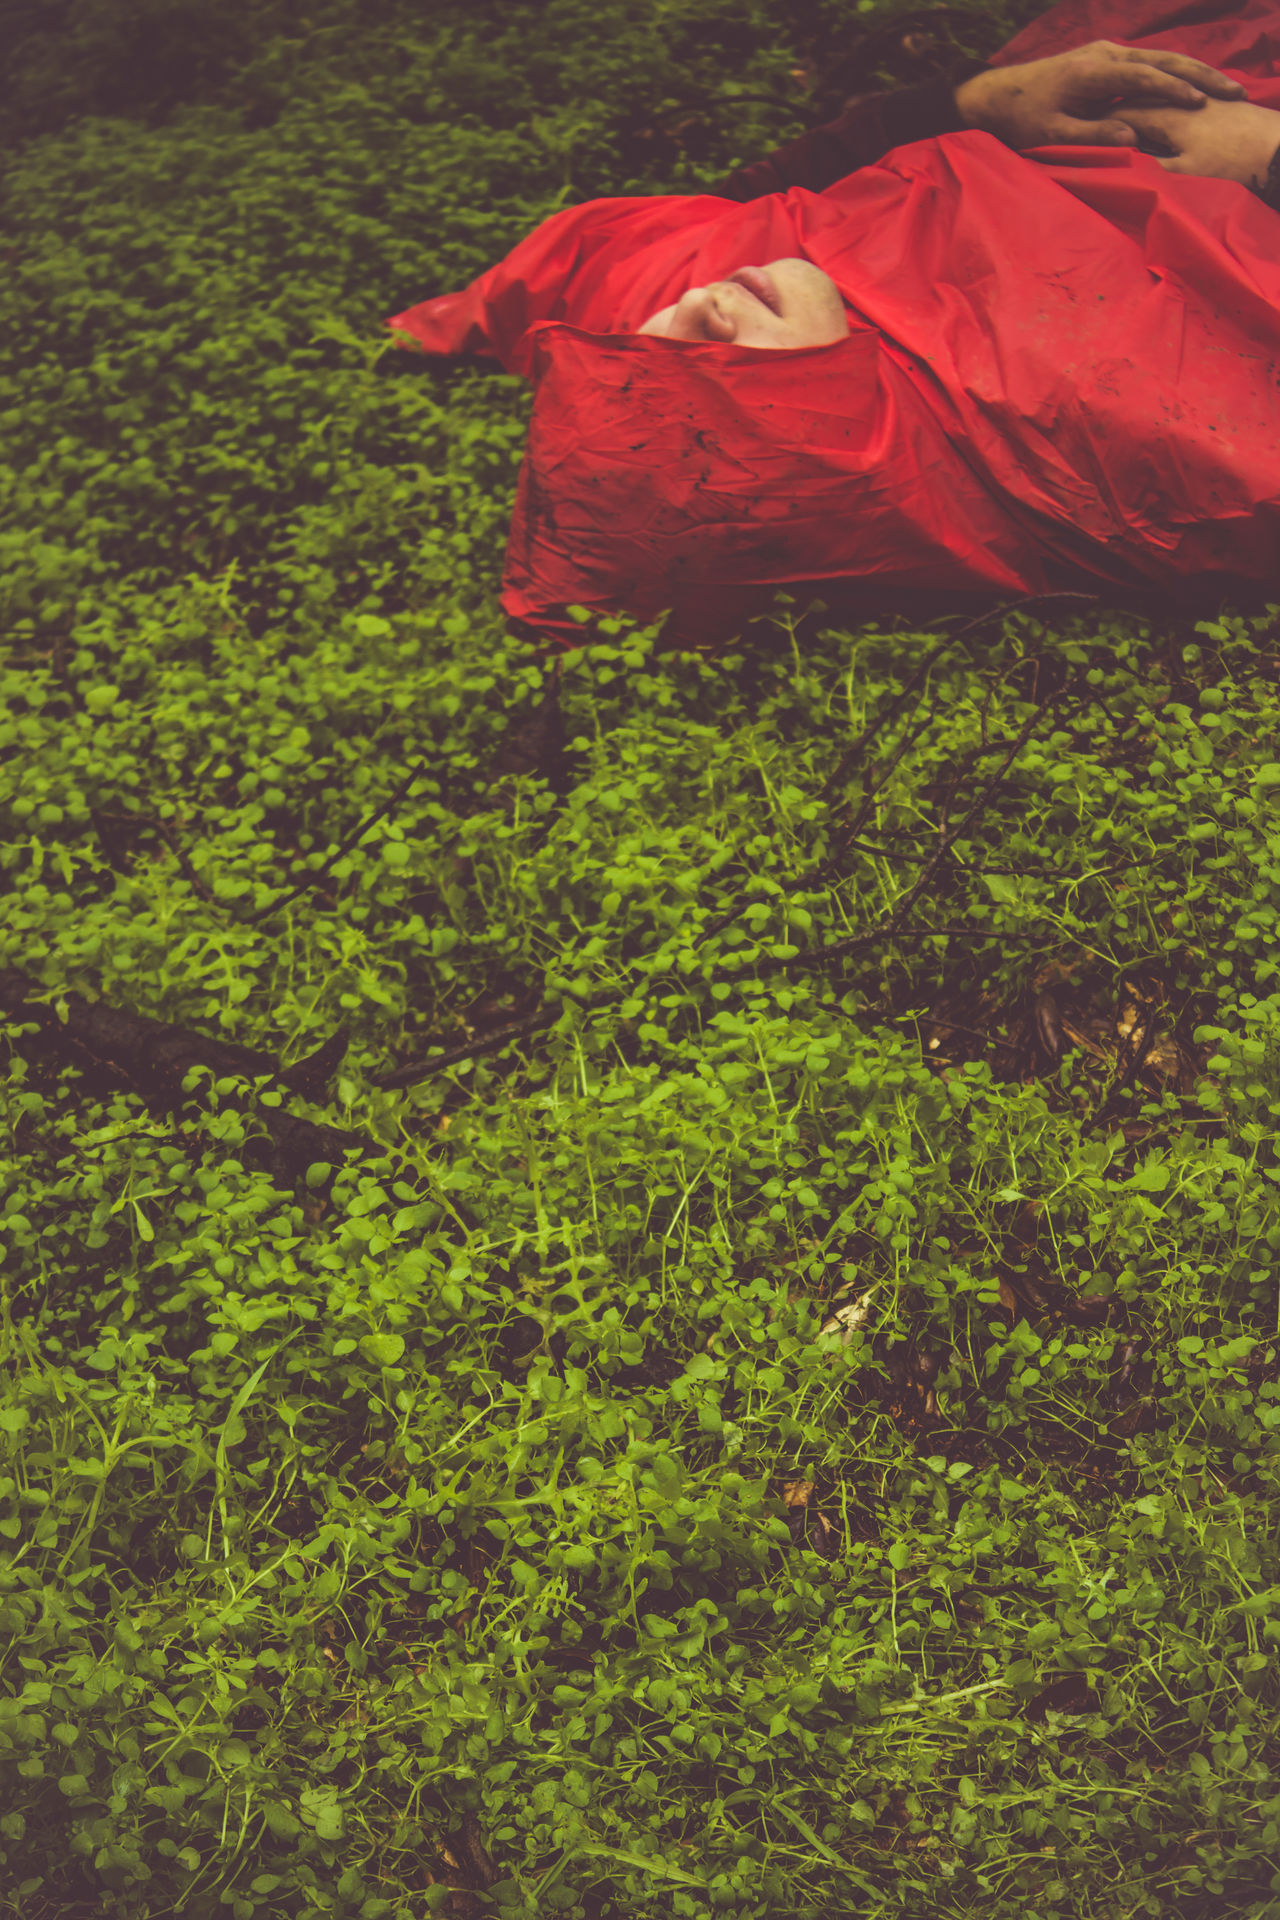 She stole the hood from me Truestory Green Color Nature Portrait No Faces Beauty In Nature Day Outdoors Grass Red Complimentary Colors